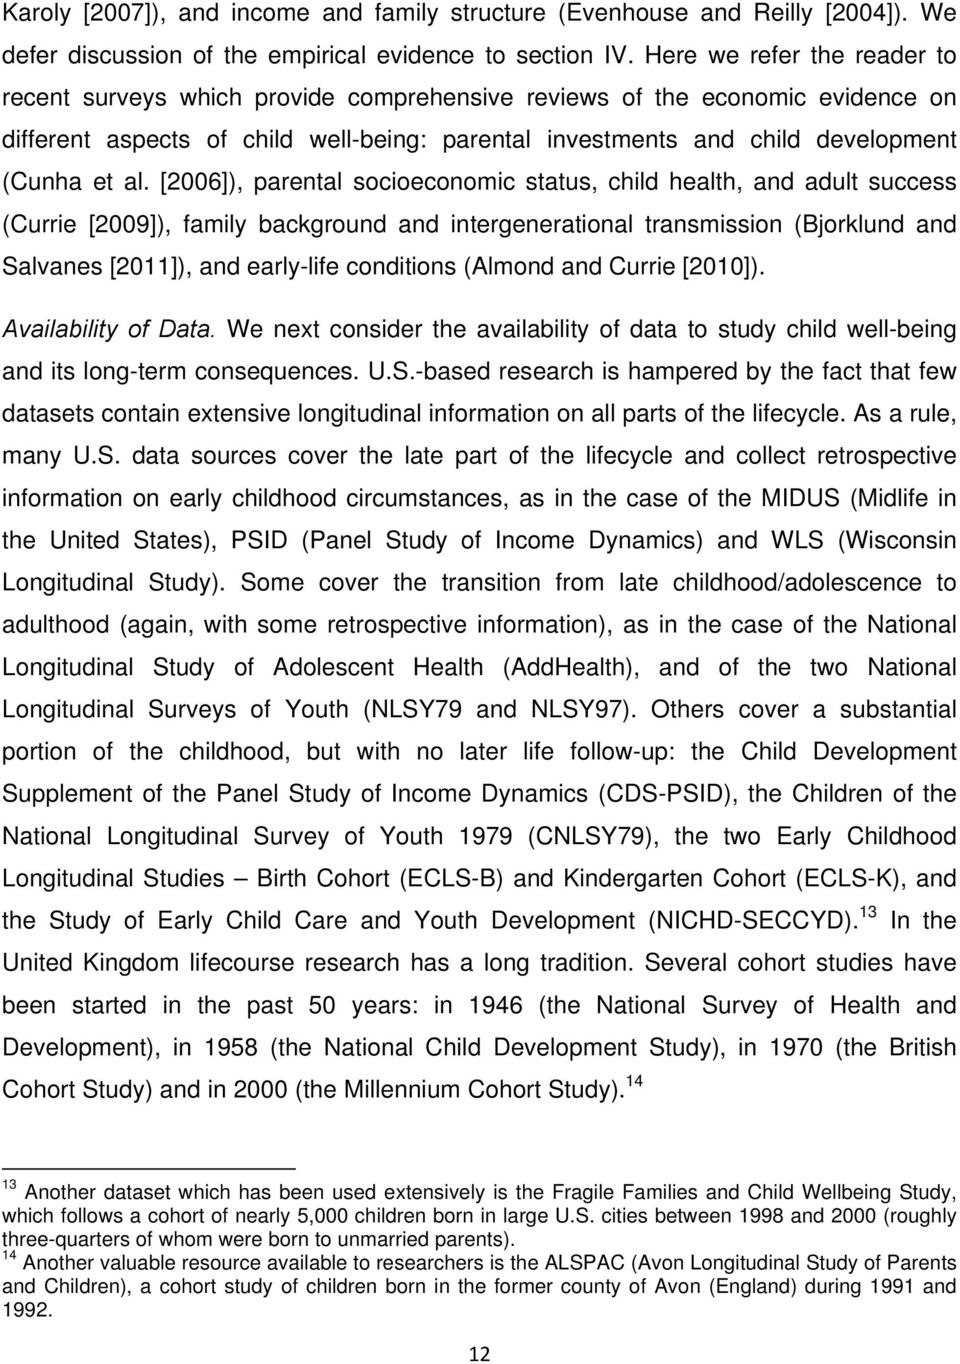 al. [2006]), parental socioeconomic status, child health, and adult success (Currie [2009]), family background and intergenerational transmission (Bjorklund and Salvanes [2011]), and early-life